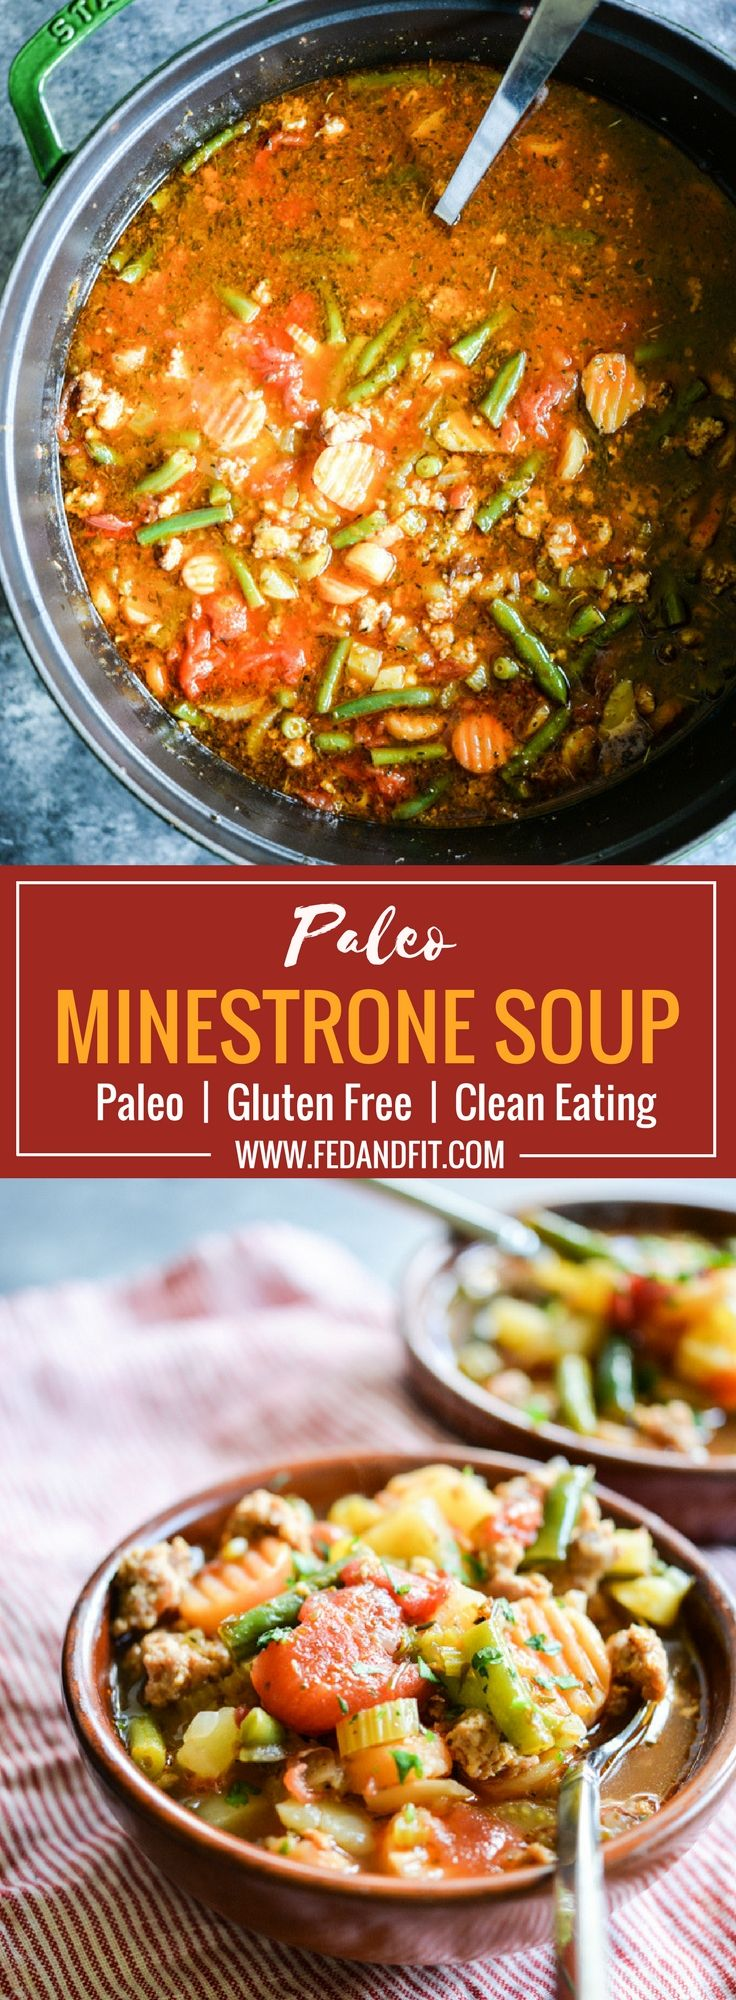 This easy, healthy minestrone soup recipe is loaded with tons of Italian sausage and veggies! If you are looking for a satisfying whole30 soup, this is it. This gluten free minestrone also makes for a great Paleo soup you'll want to eat all winter long! #paleosoups #soup #glutenfree